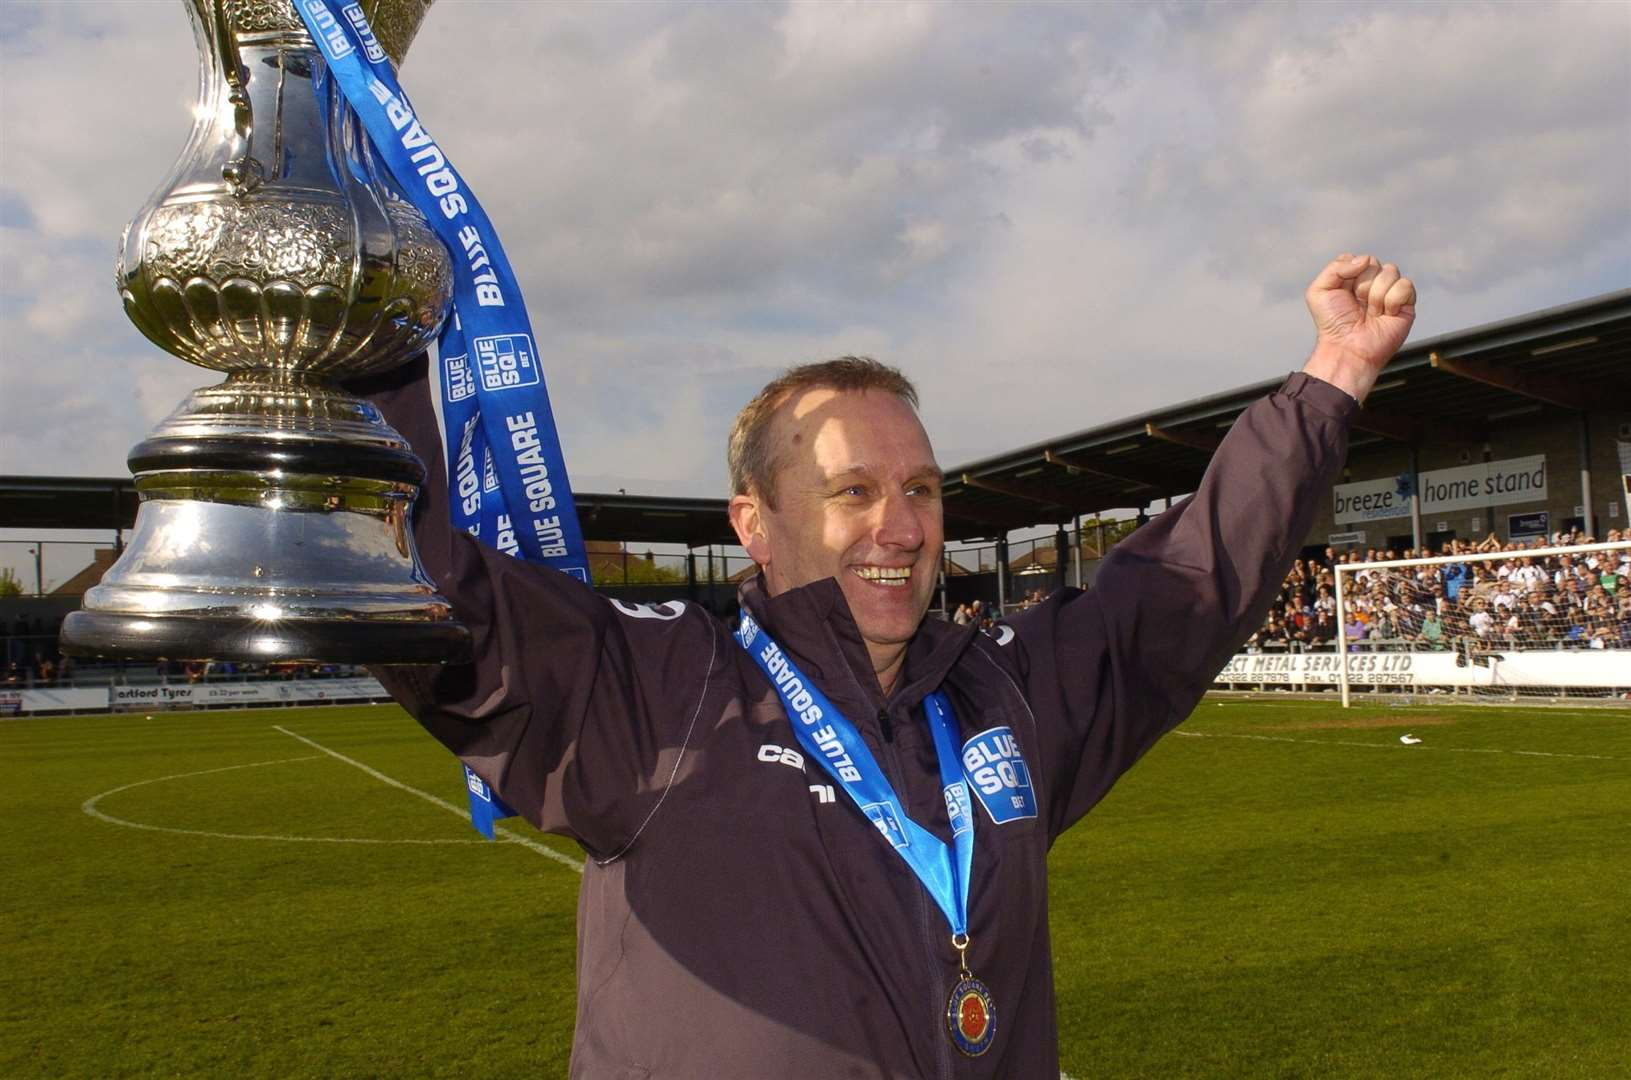 Tony Burman celebrates promotion to the Conference in 2012 Picture: Steve Crispe